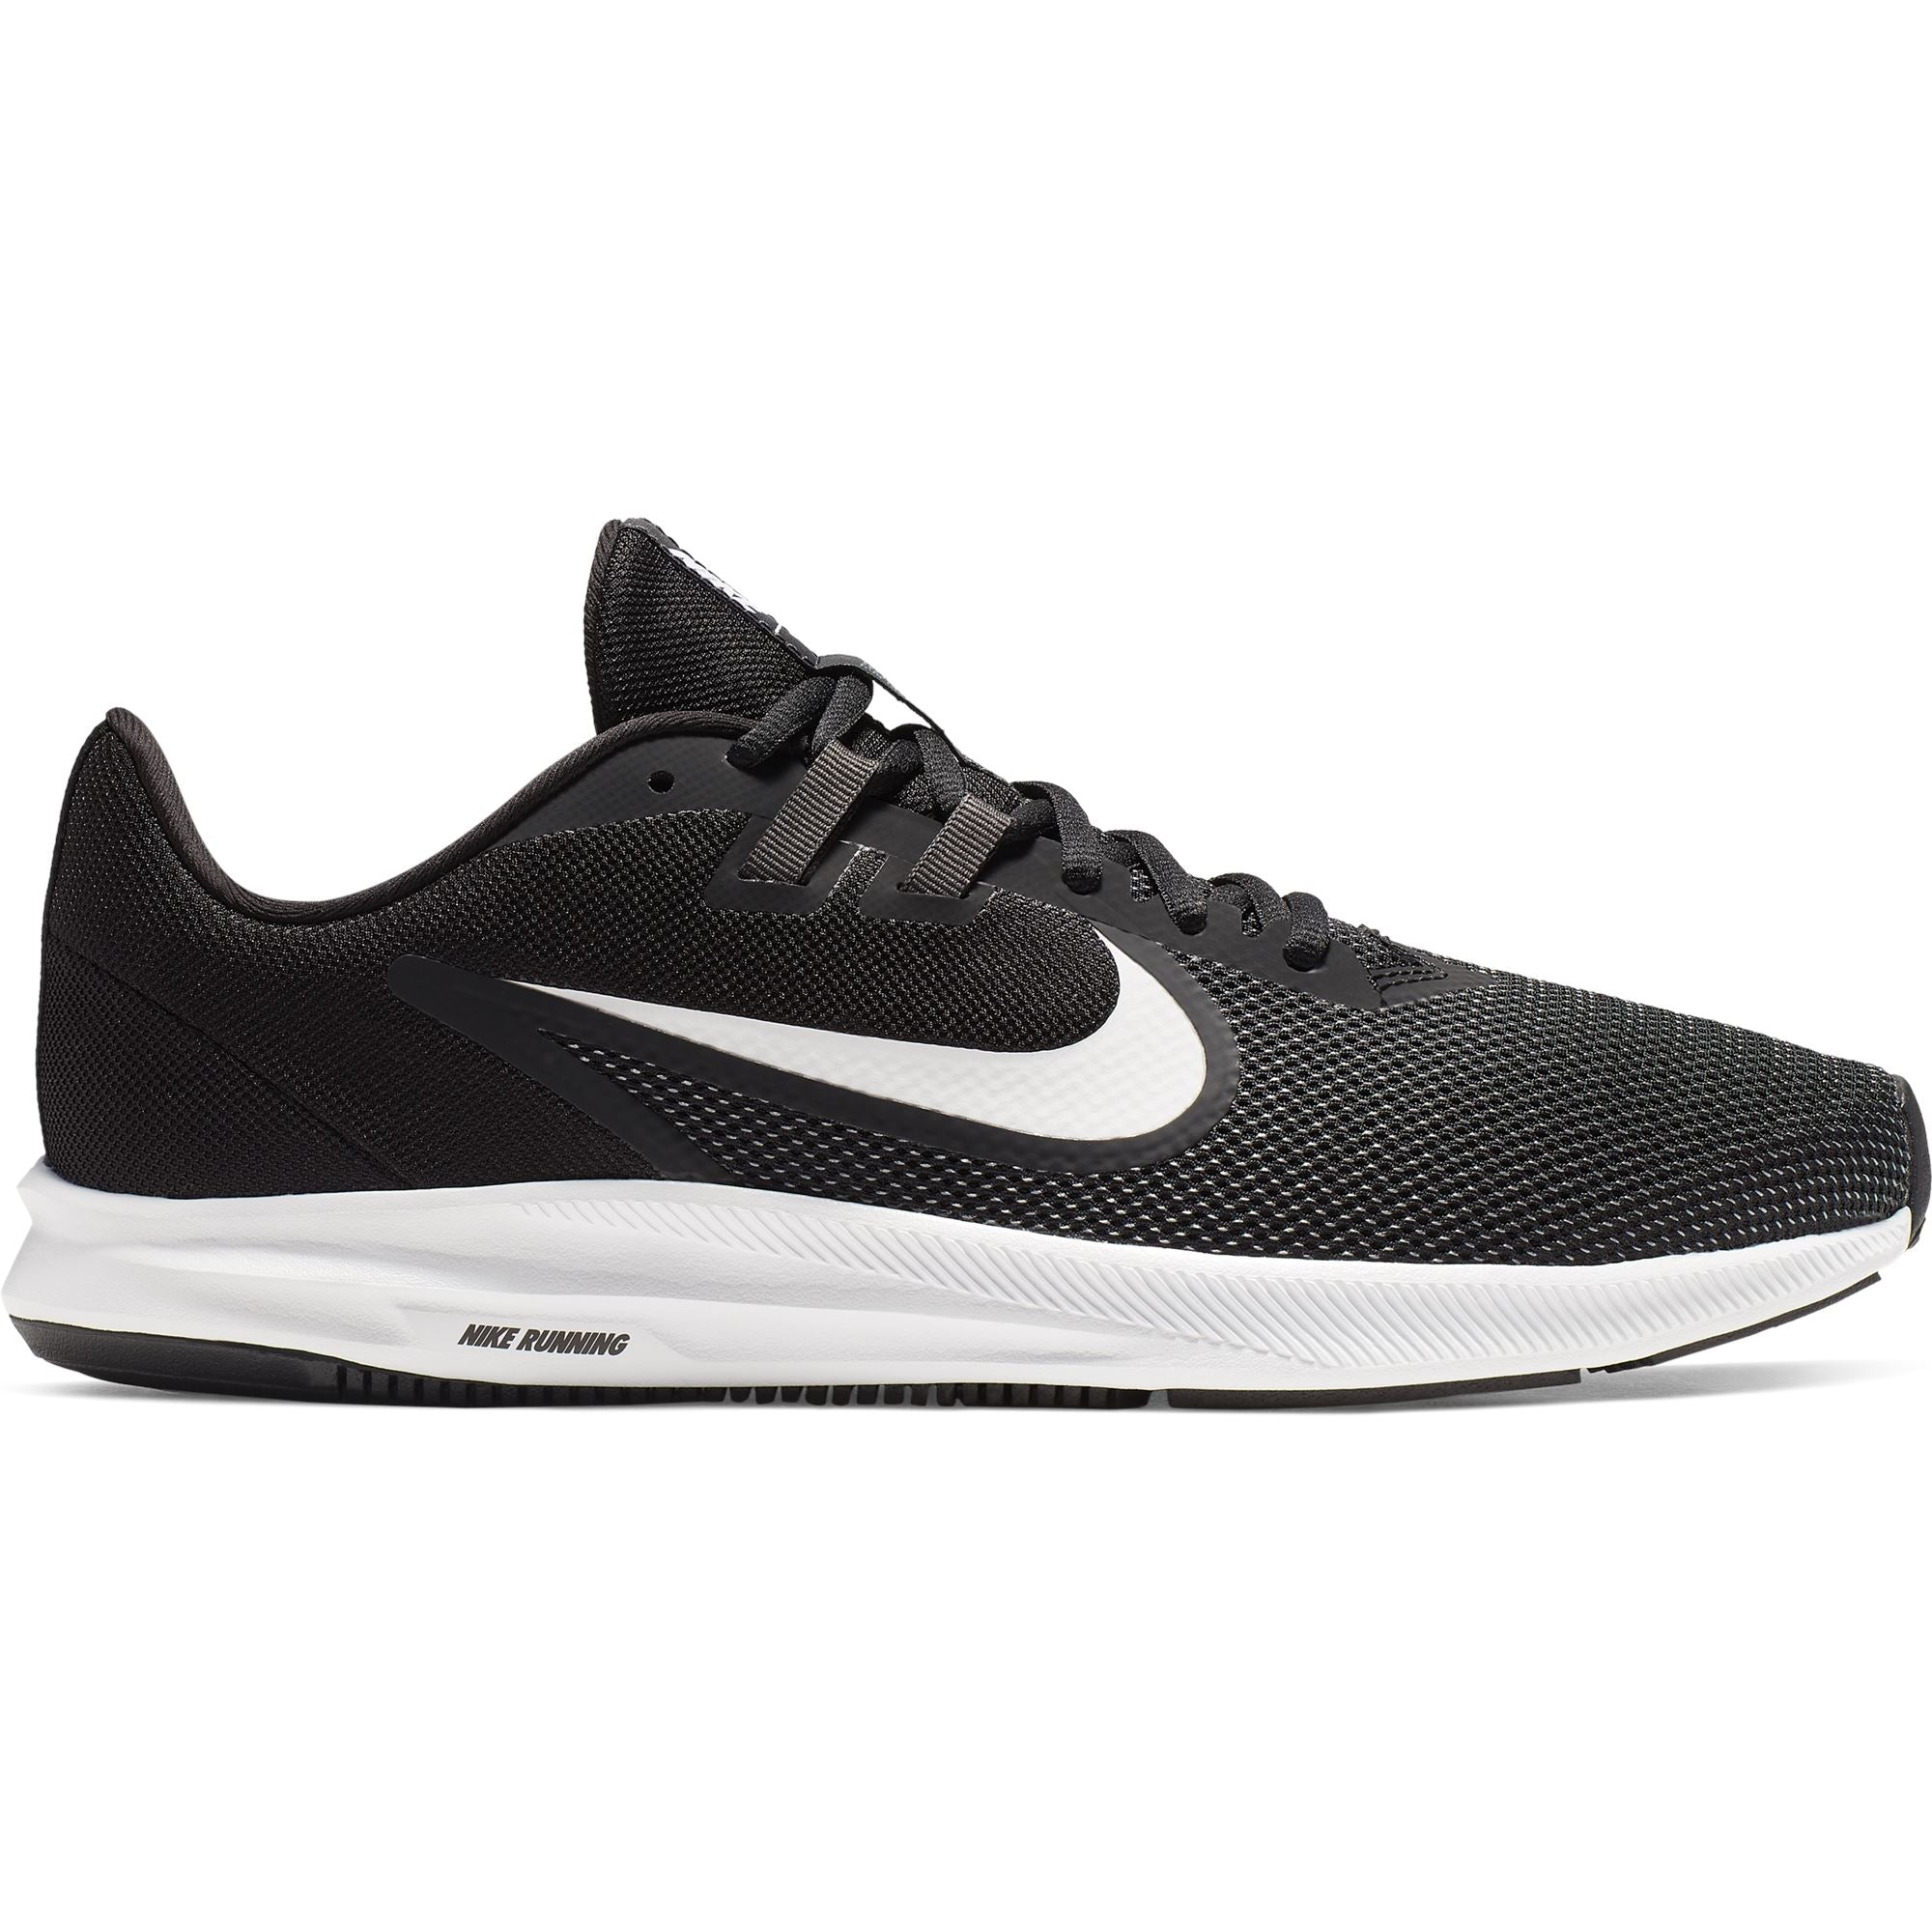 Nike Mens Downshifter 9 - Black/White-Anthracite-Cool Grey Q3NIKE Nike